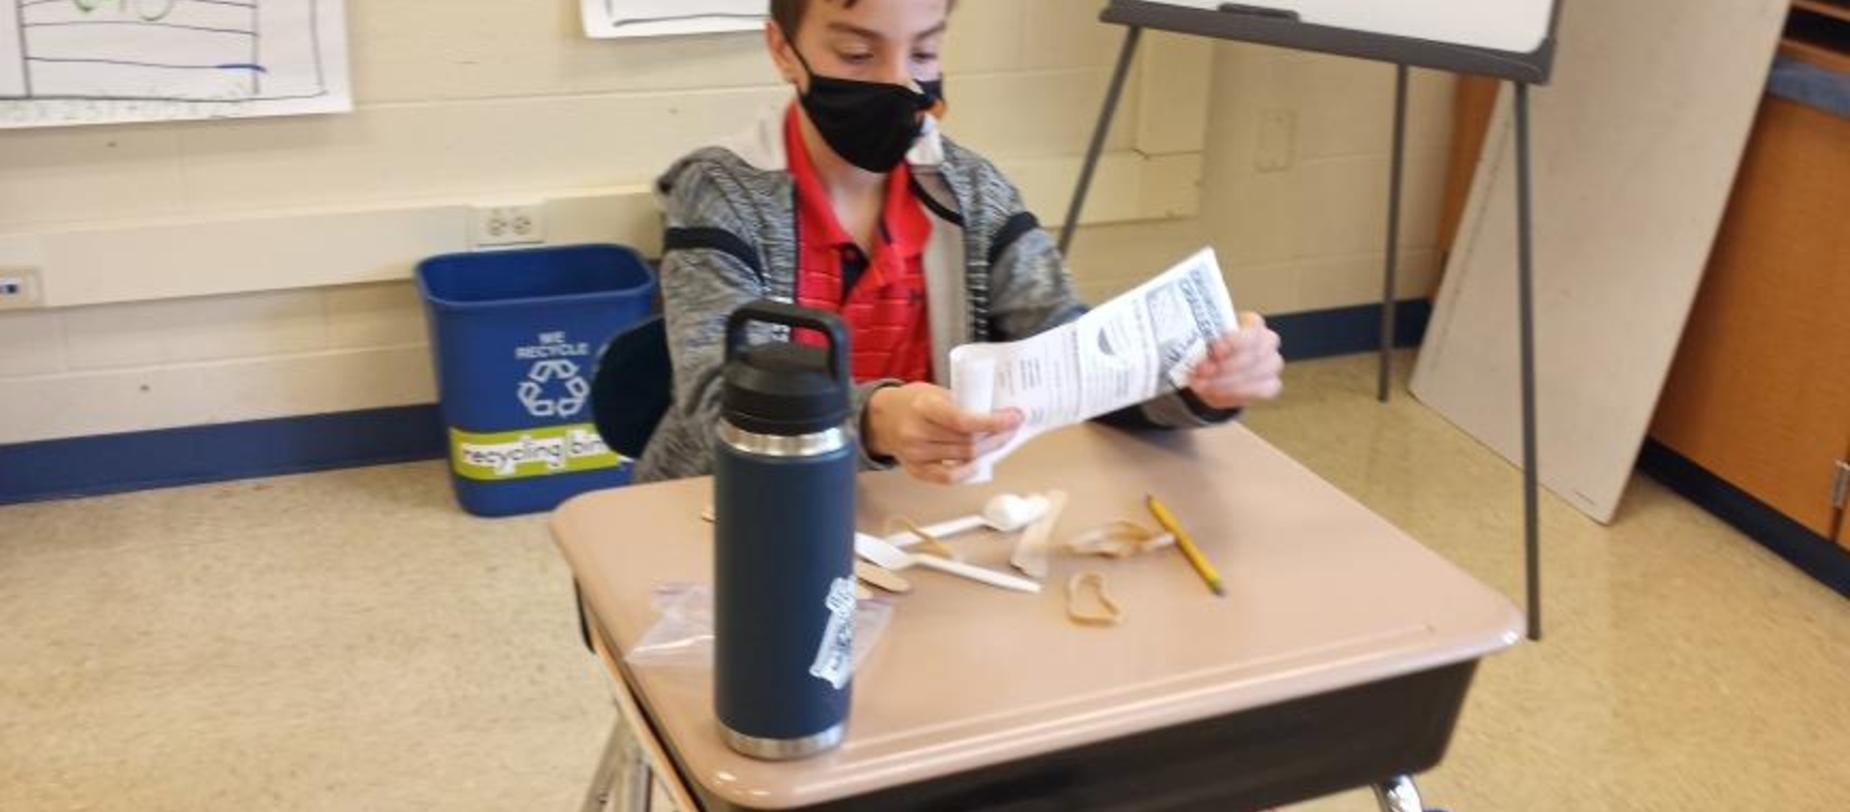 boy wearing a mask working on a project